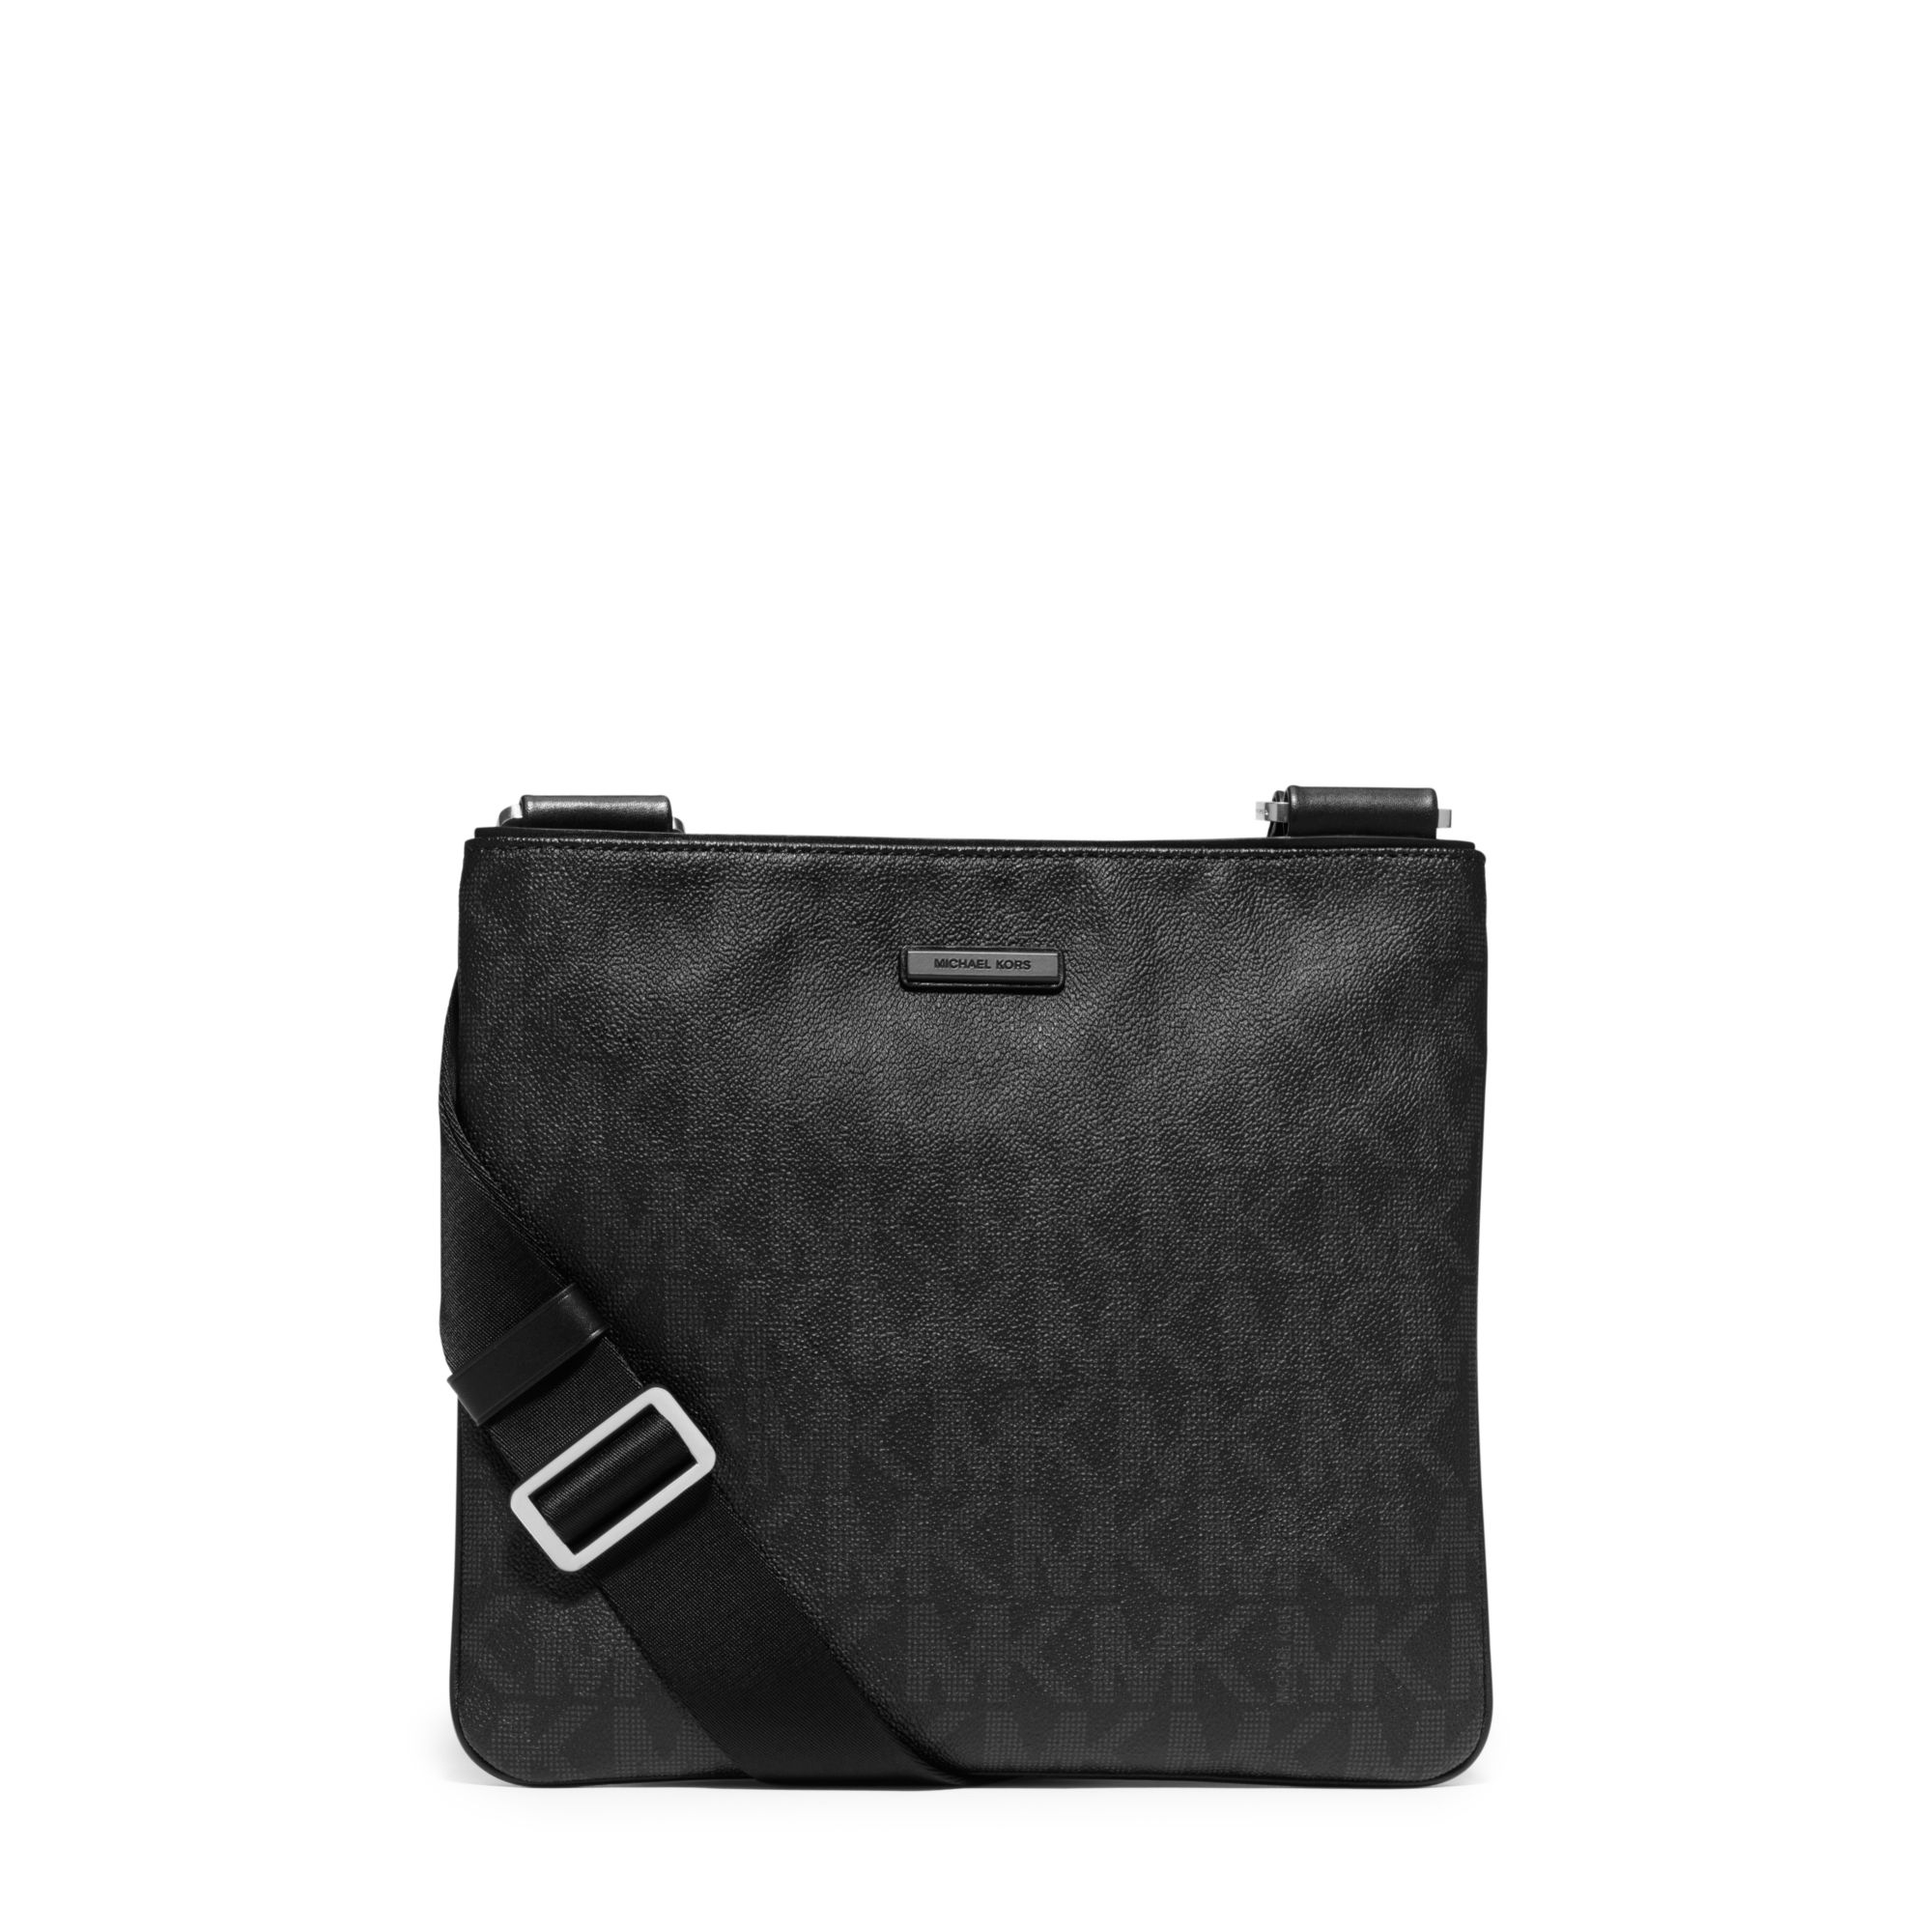 8ca4e4b3e292 Michael Kors Jet Set Logo Crossbody in Black for Men